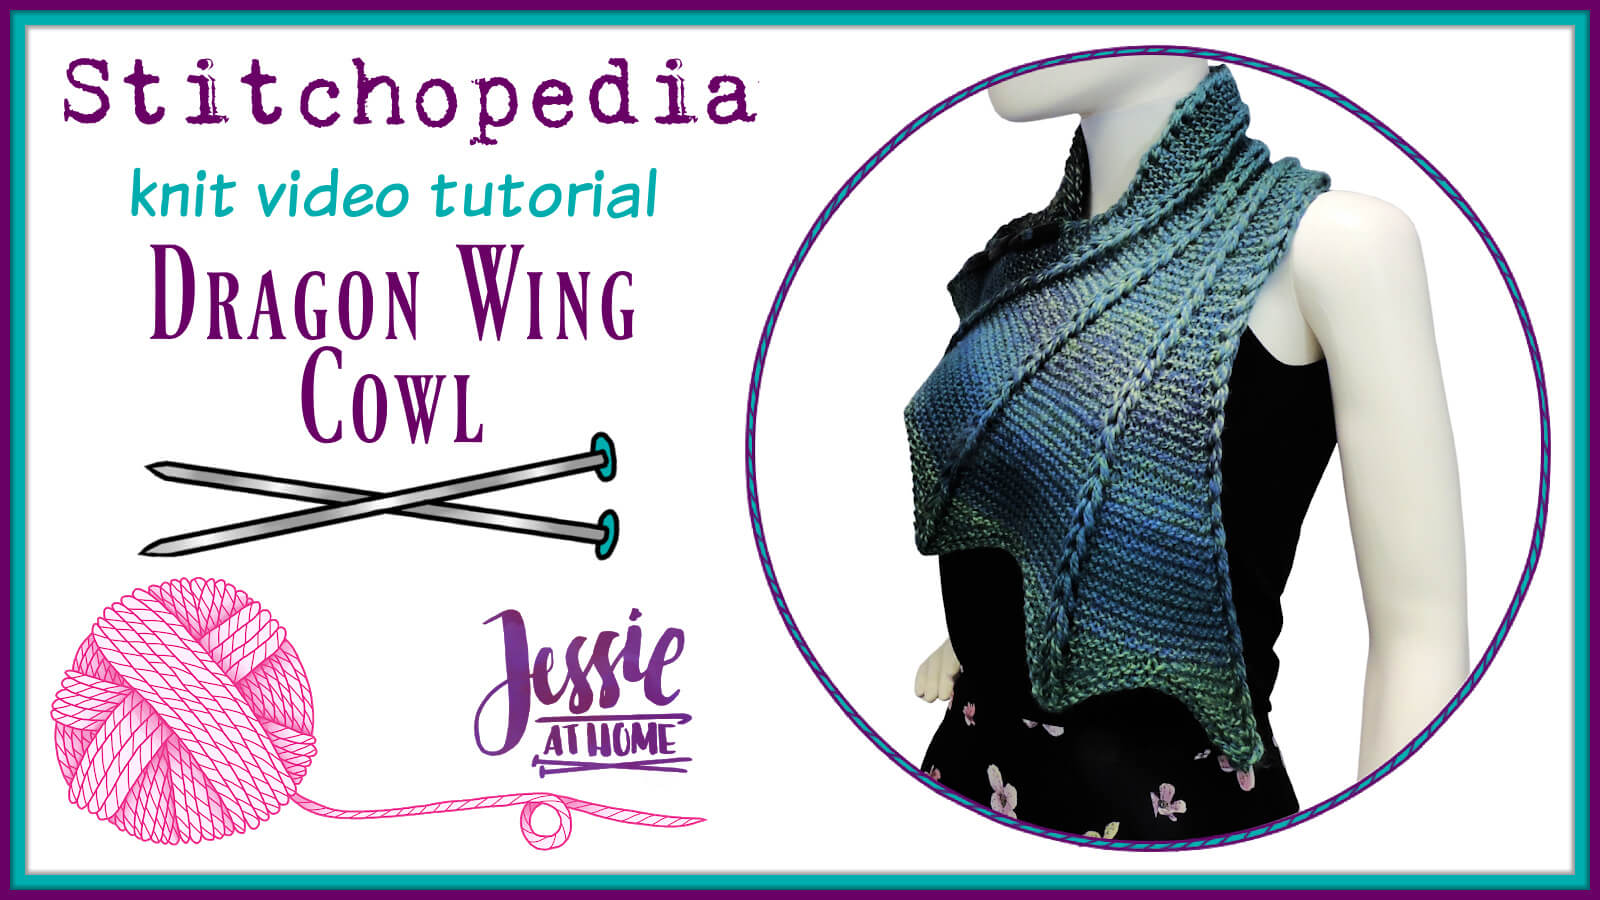 Knit Dragon Wing Cowl Stitchopedia Video Tutorial by Jessie At Home - Cover